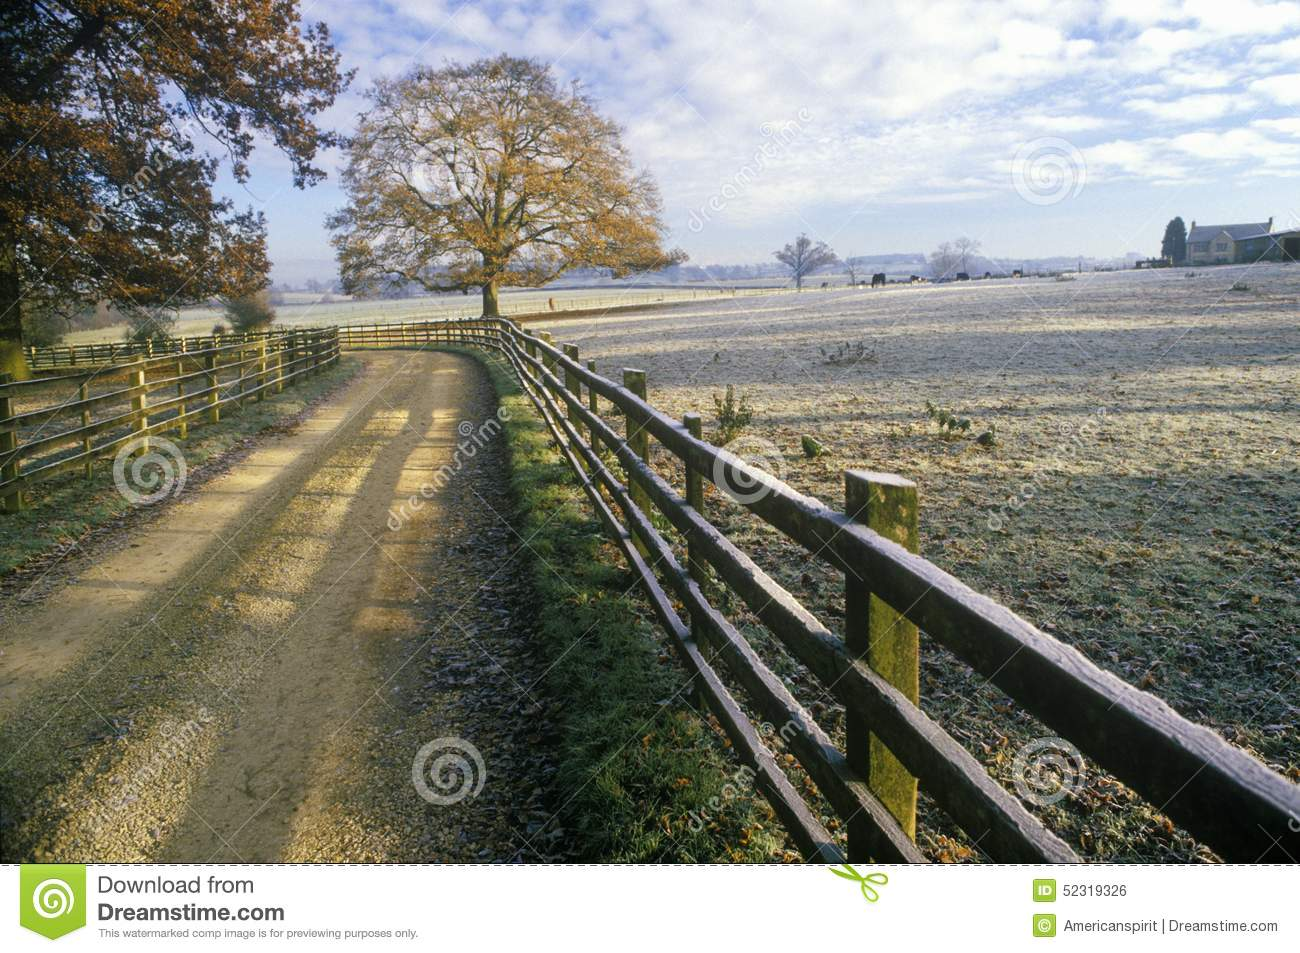 Morning view of a country road and wood fence in Upper Brails, England